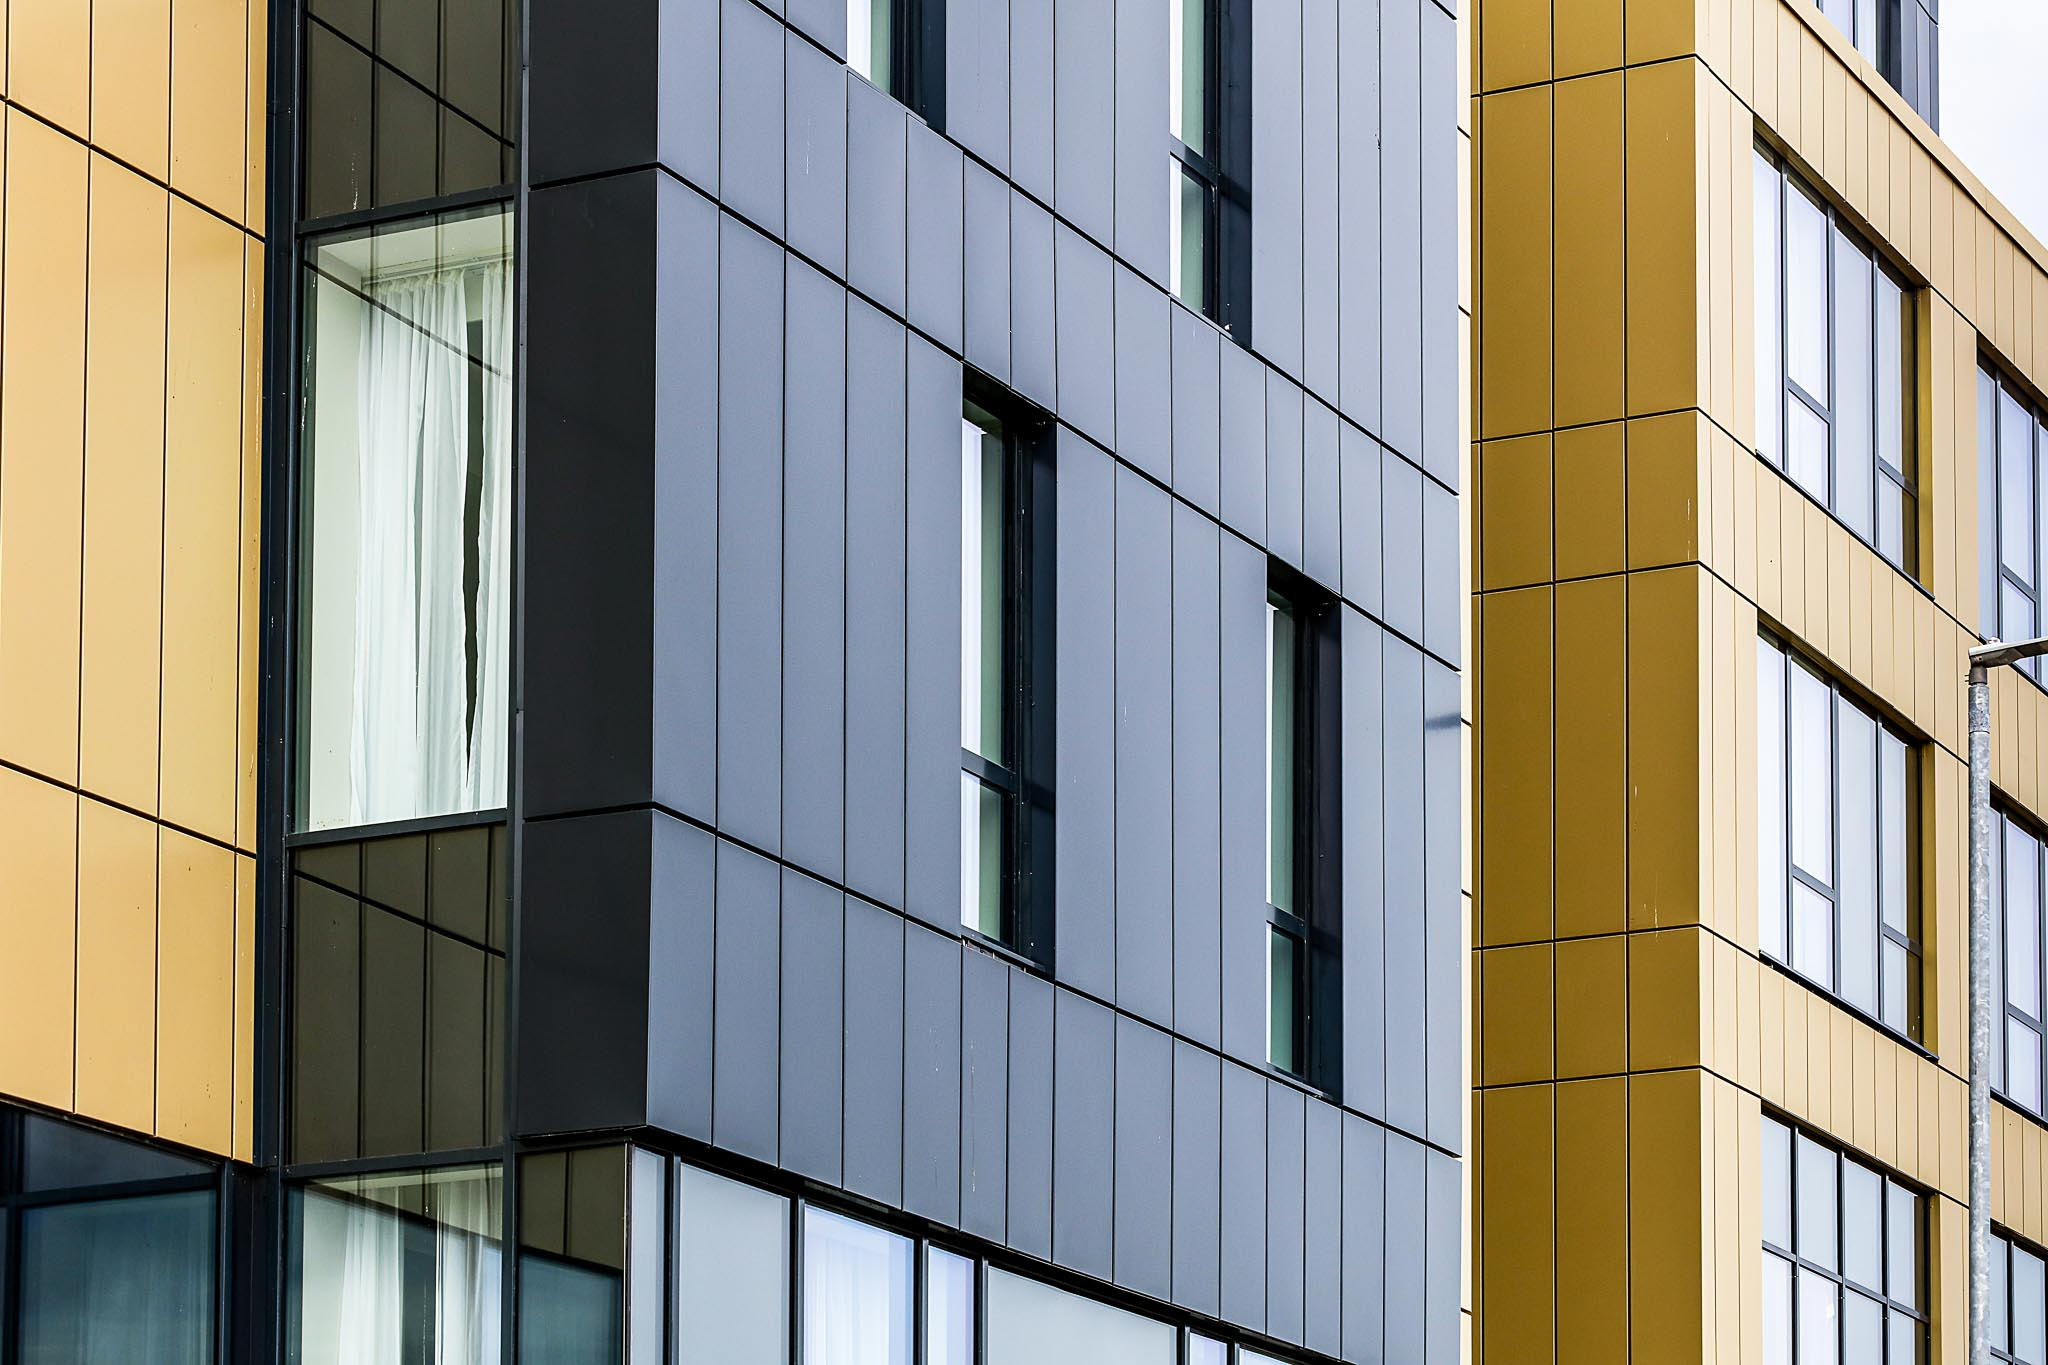 cladding and windows for west london hotel